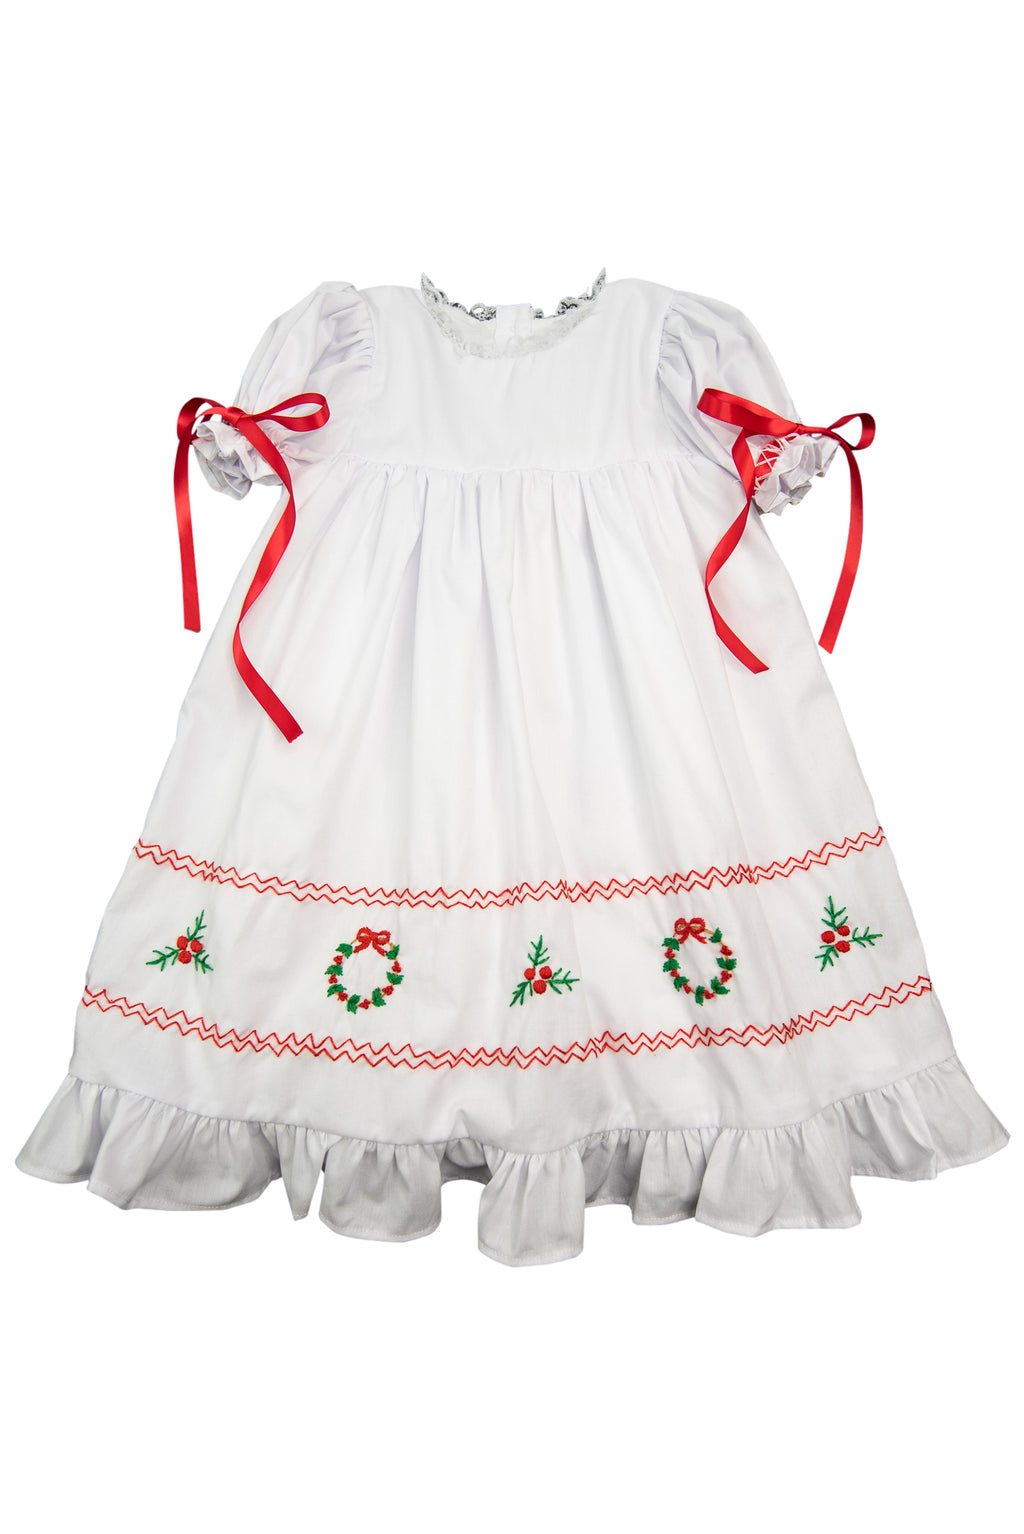 Girls Wreath and Holly Heirloom Length Dress